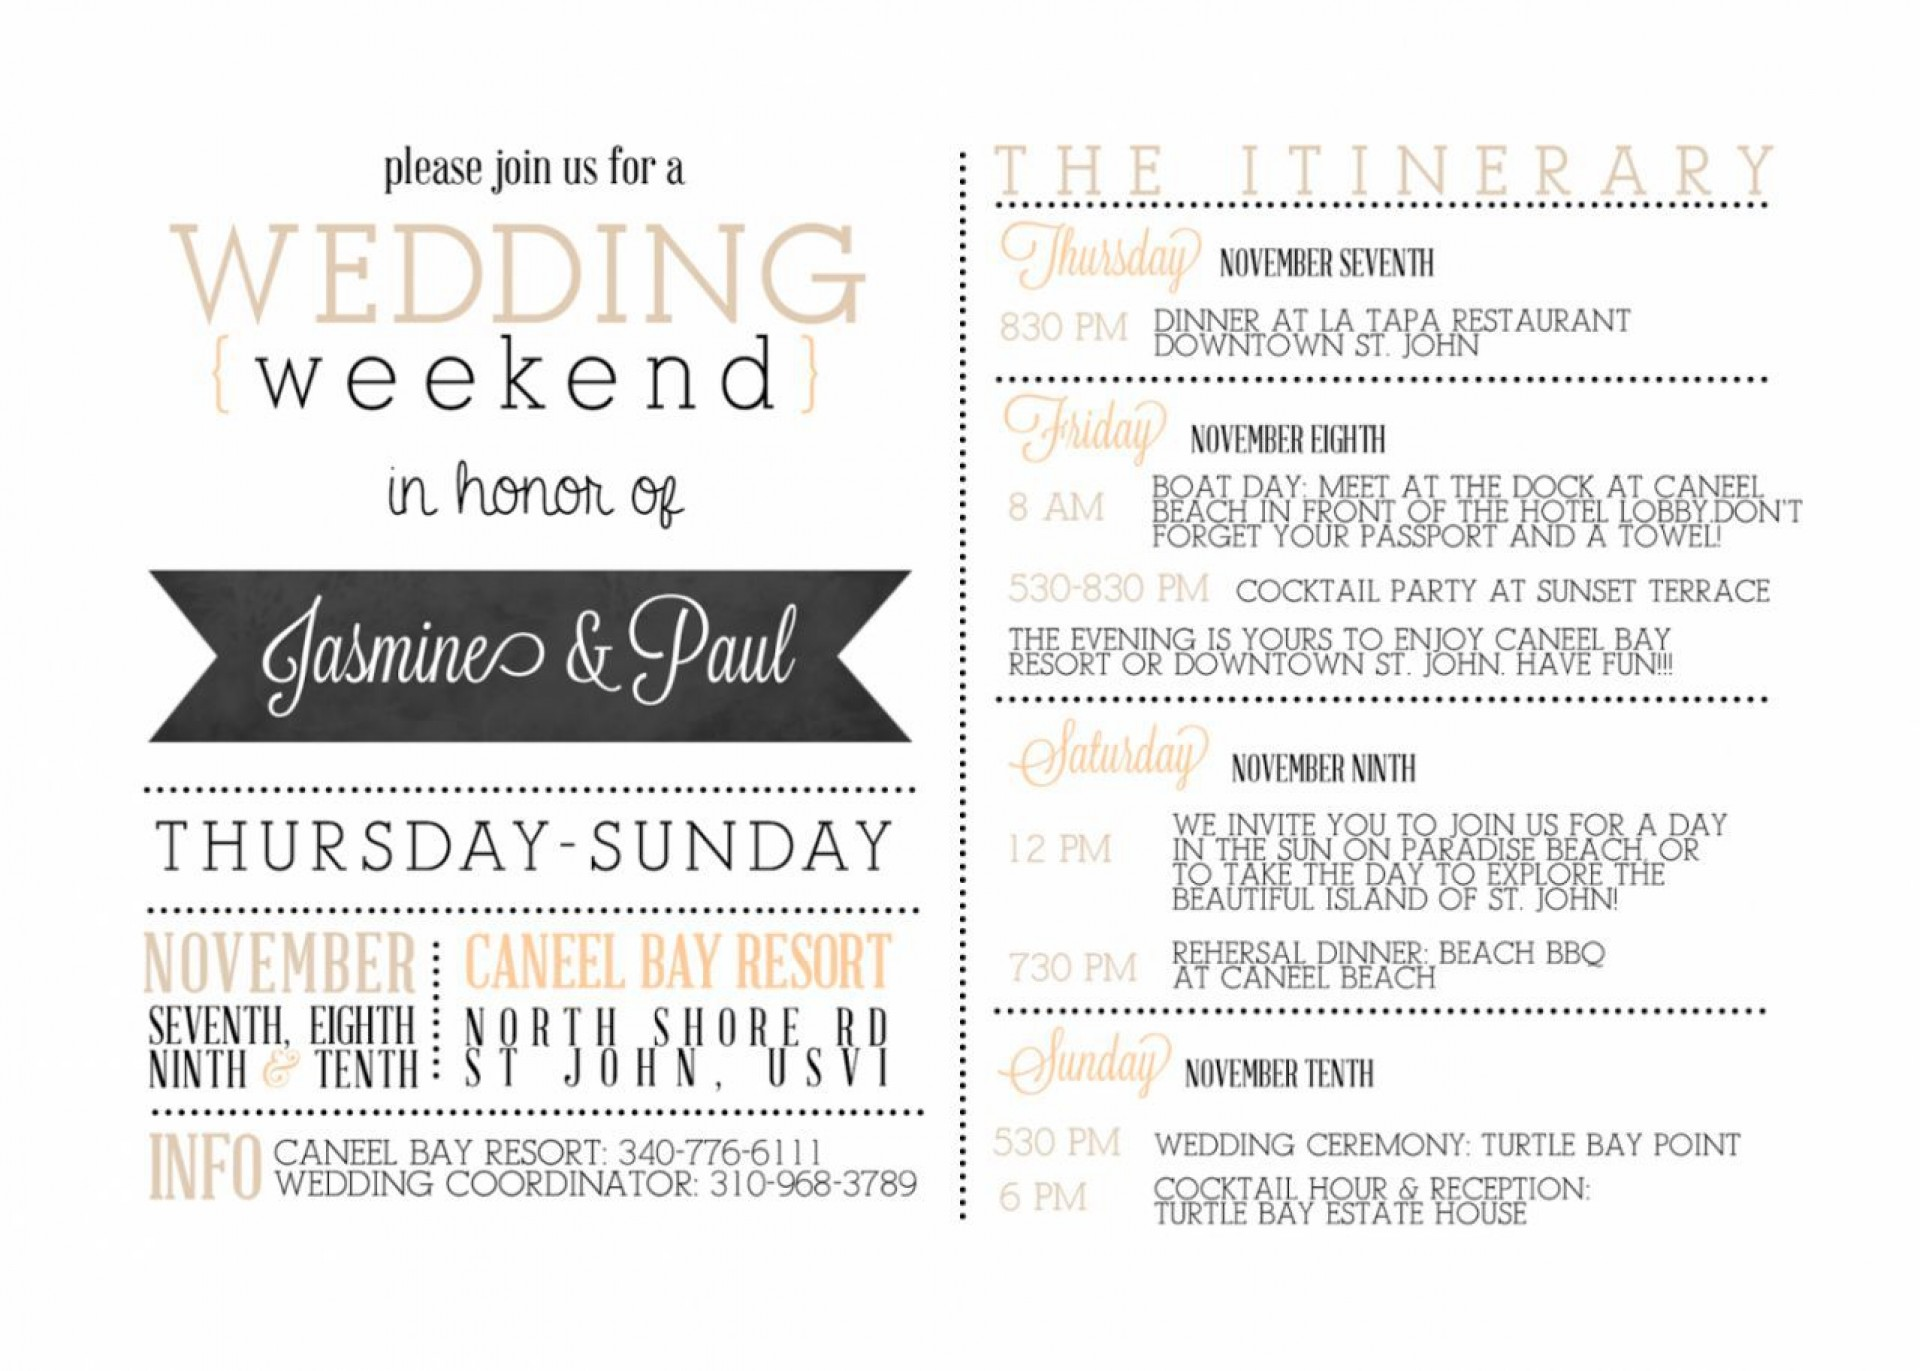 001 Impressive Wedding Weekend Itinerary Template Concept  Day Word Reception Timeline Excel1920